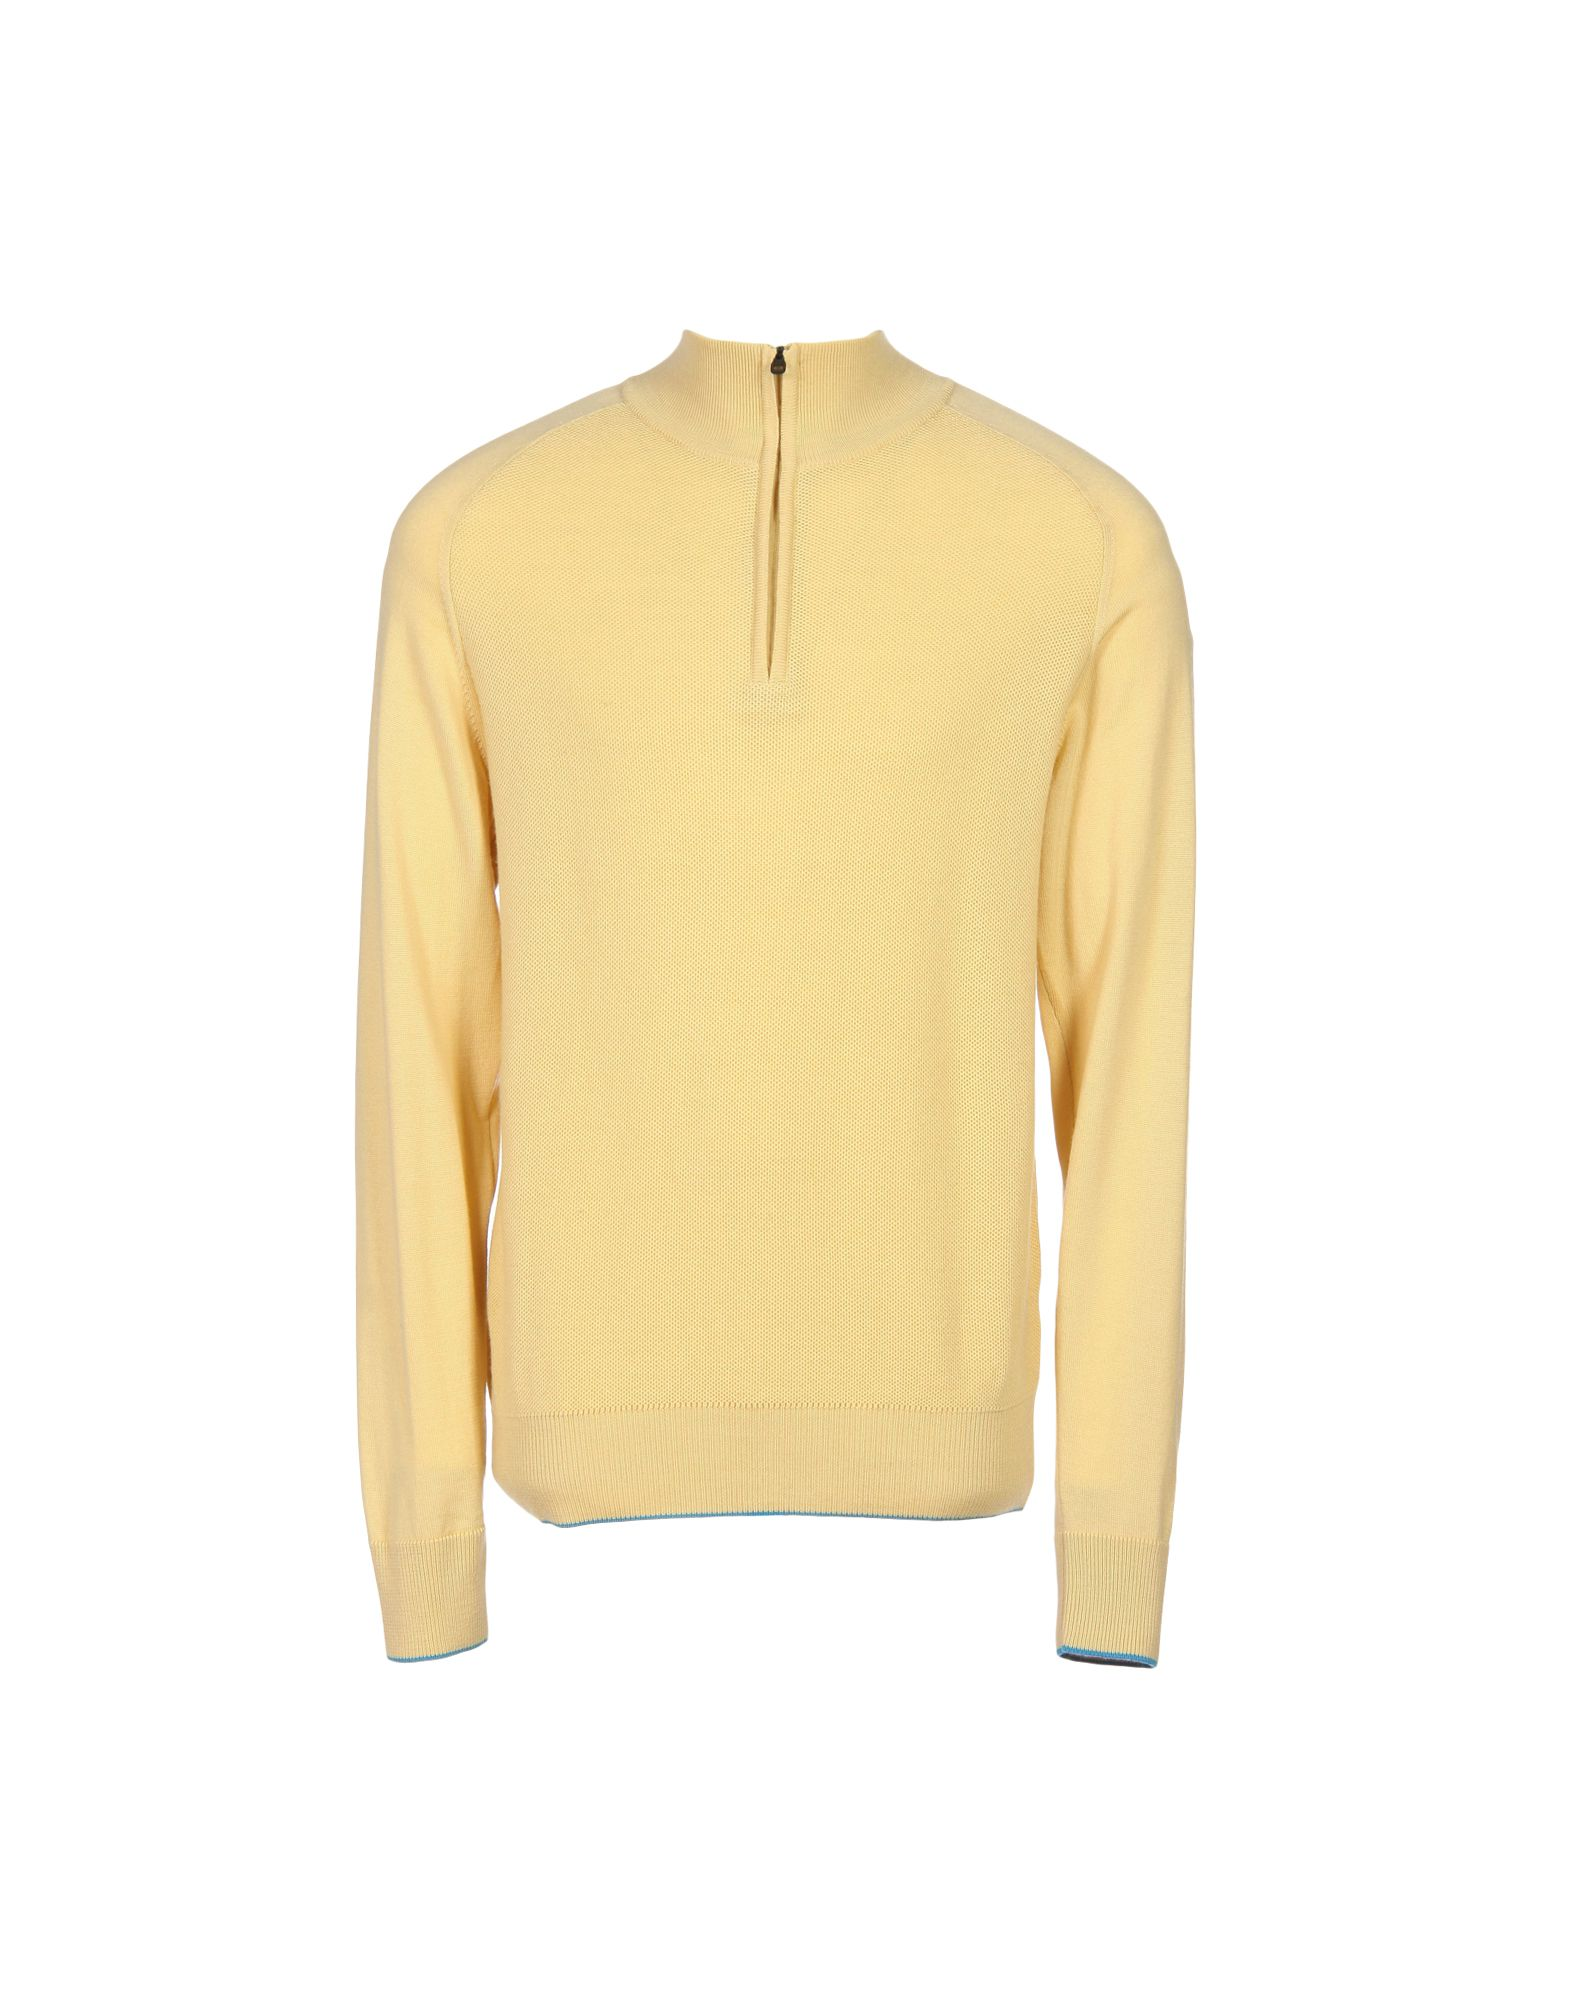 DUNHILL LINKS Sweater With Zip in Ocher